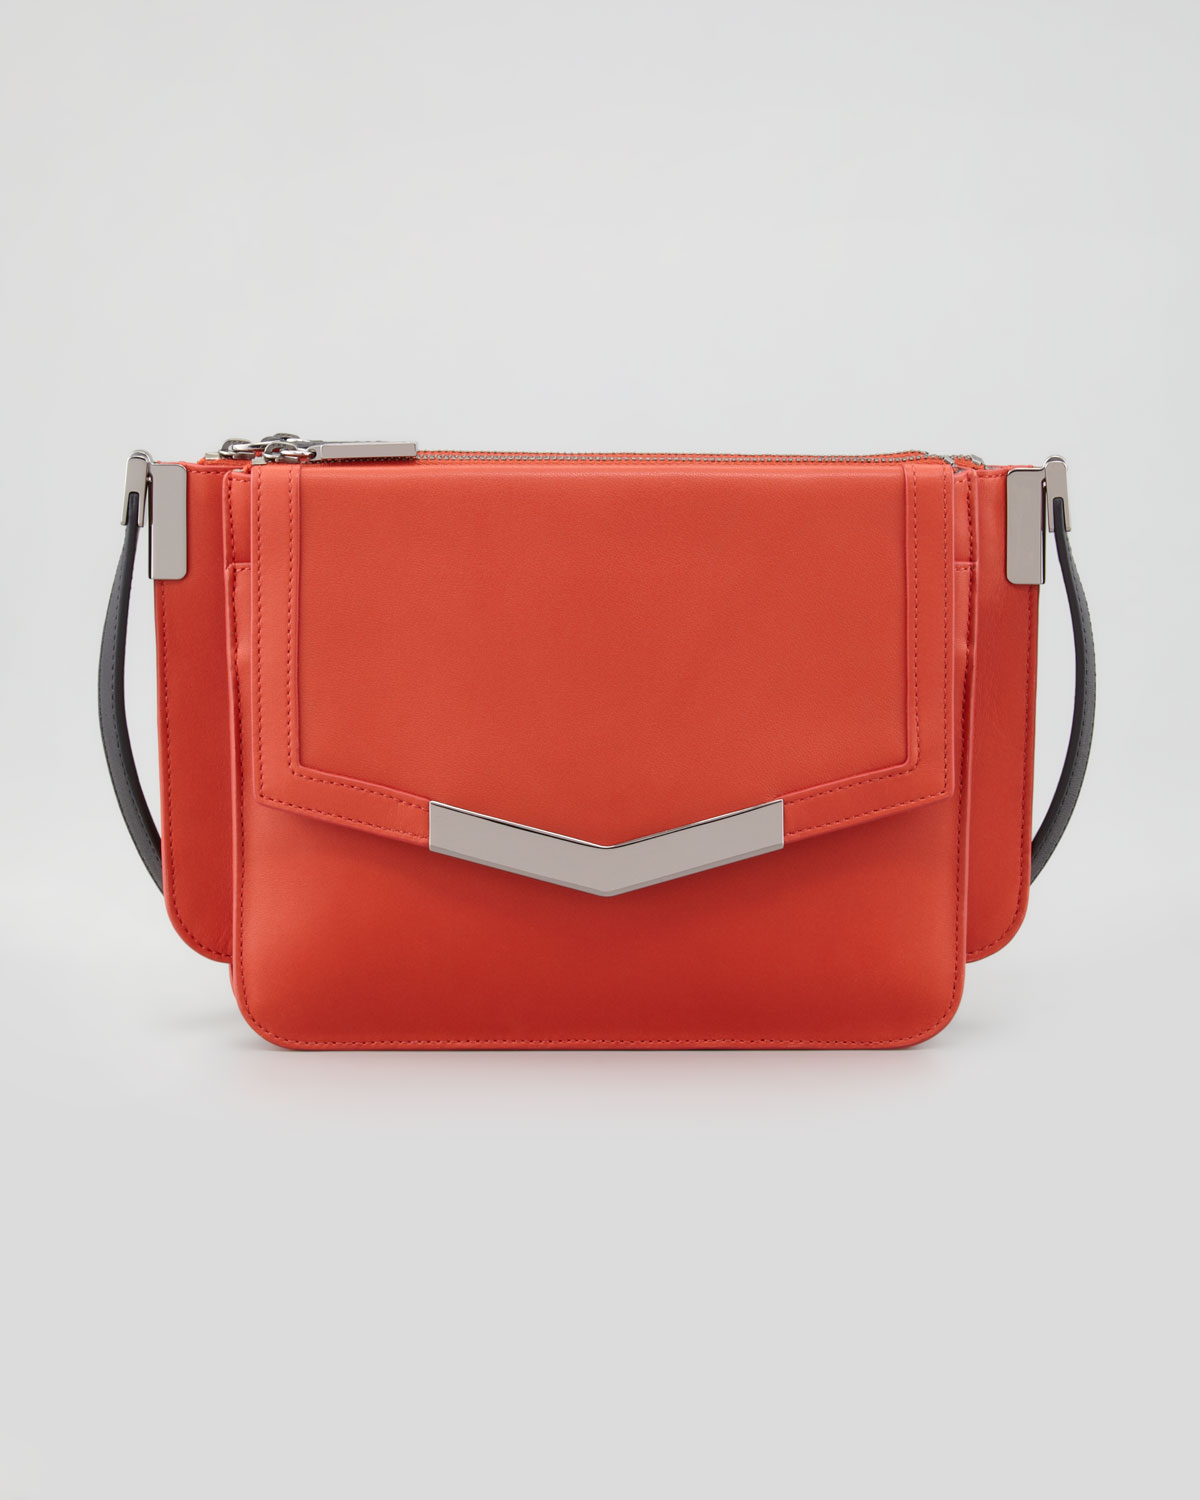 Lyst - Time s Arrow Mini Trilogy Leather Crossbody Bag Paprika in Red 7127b82a32a2d